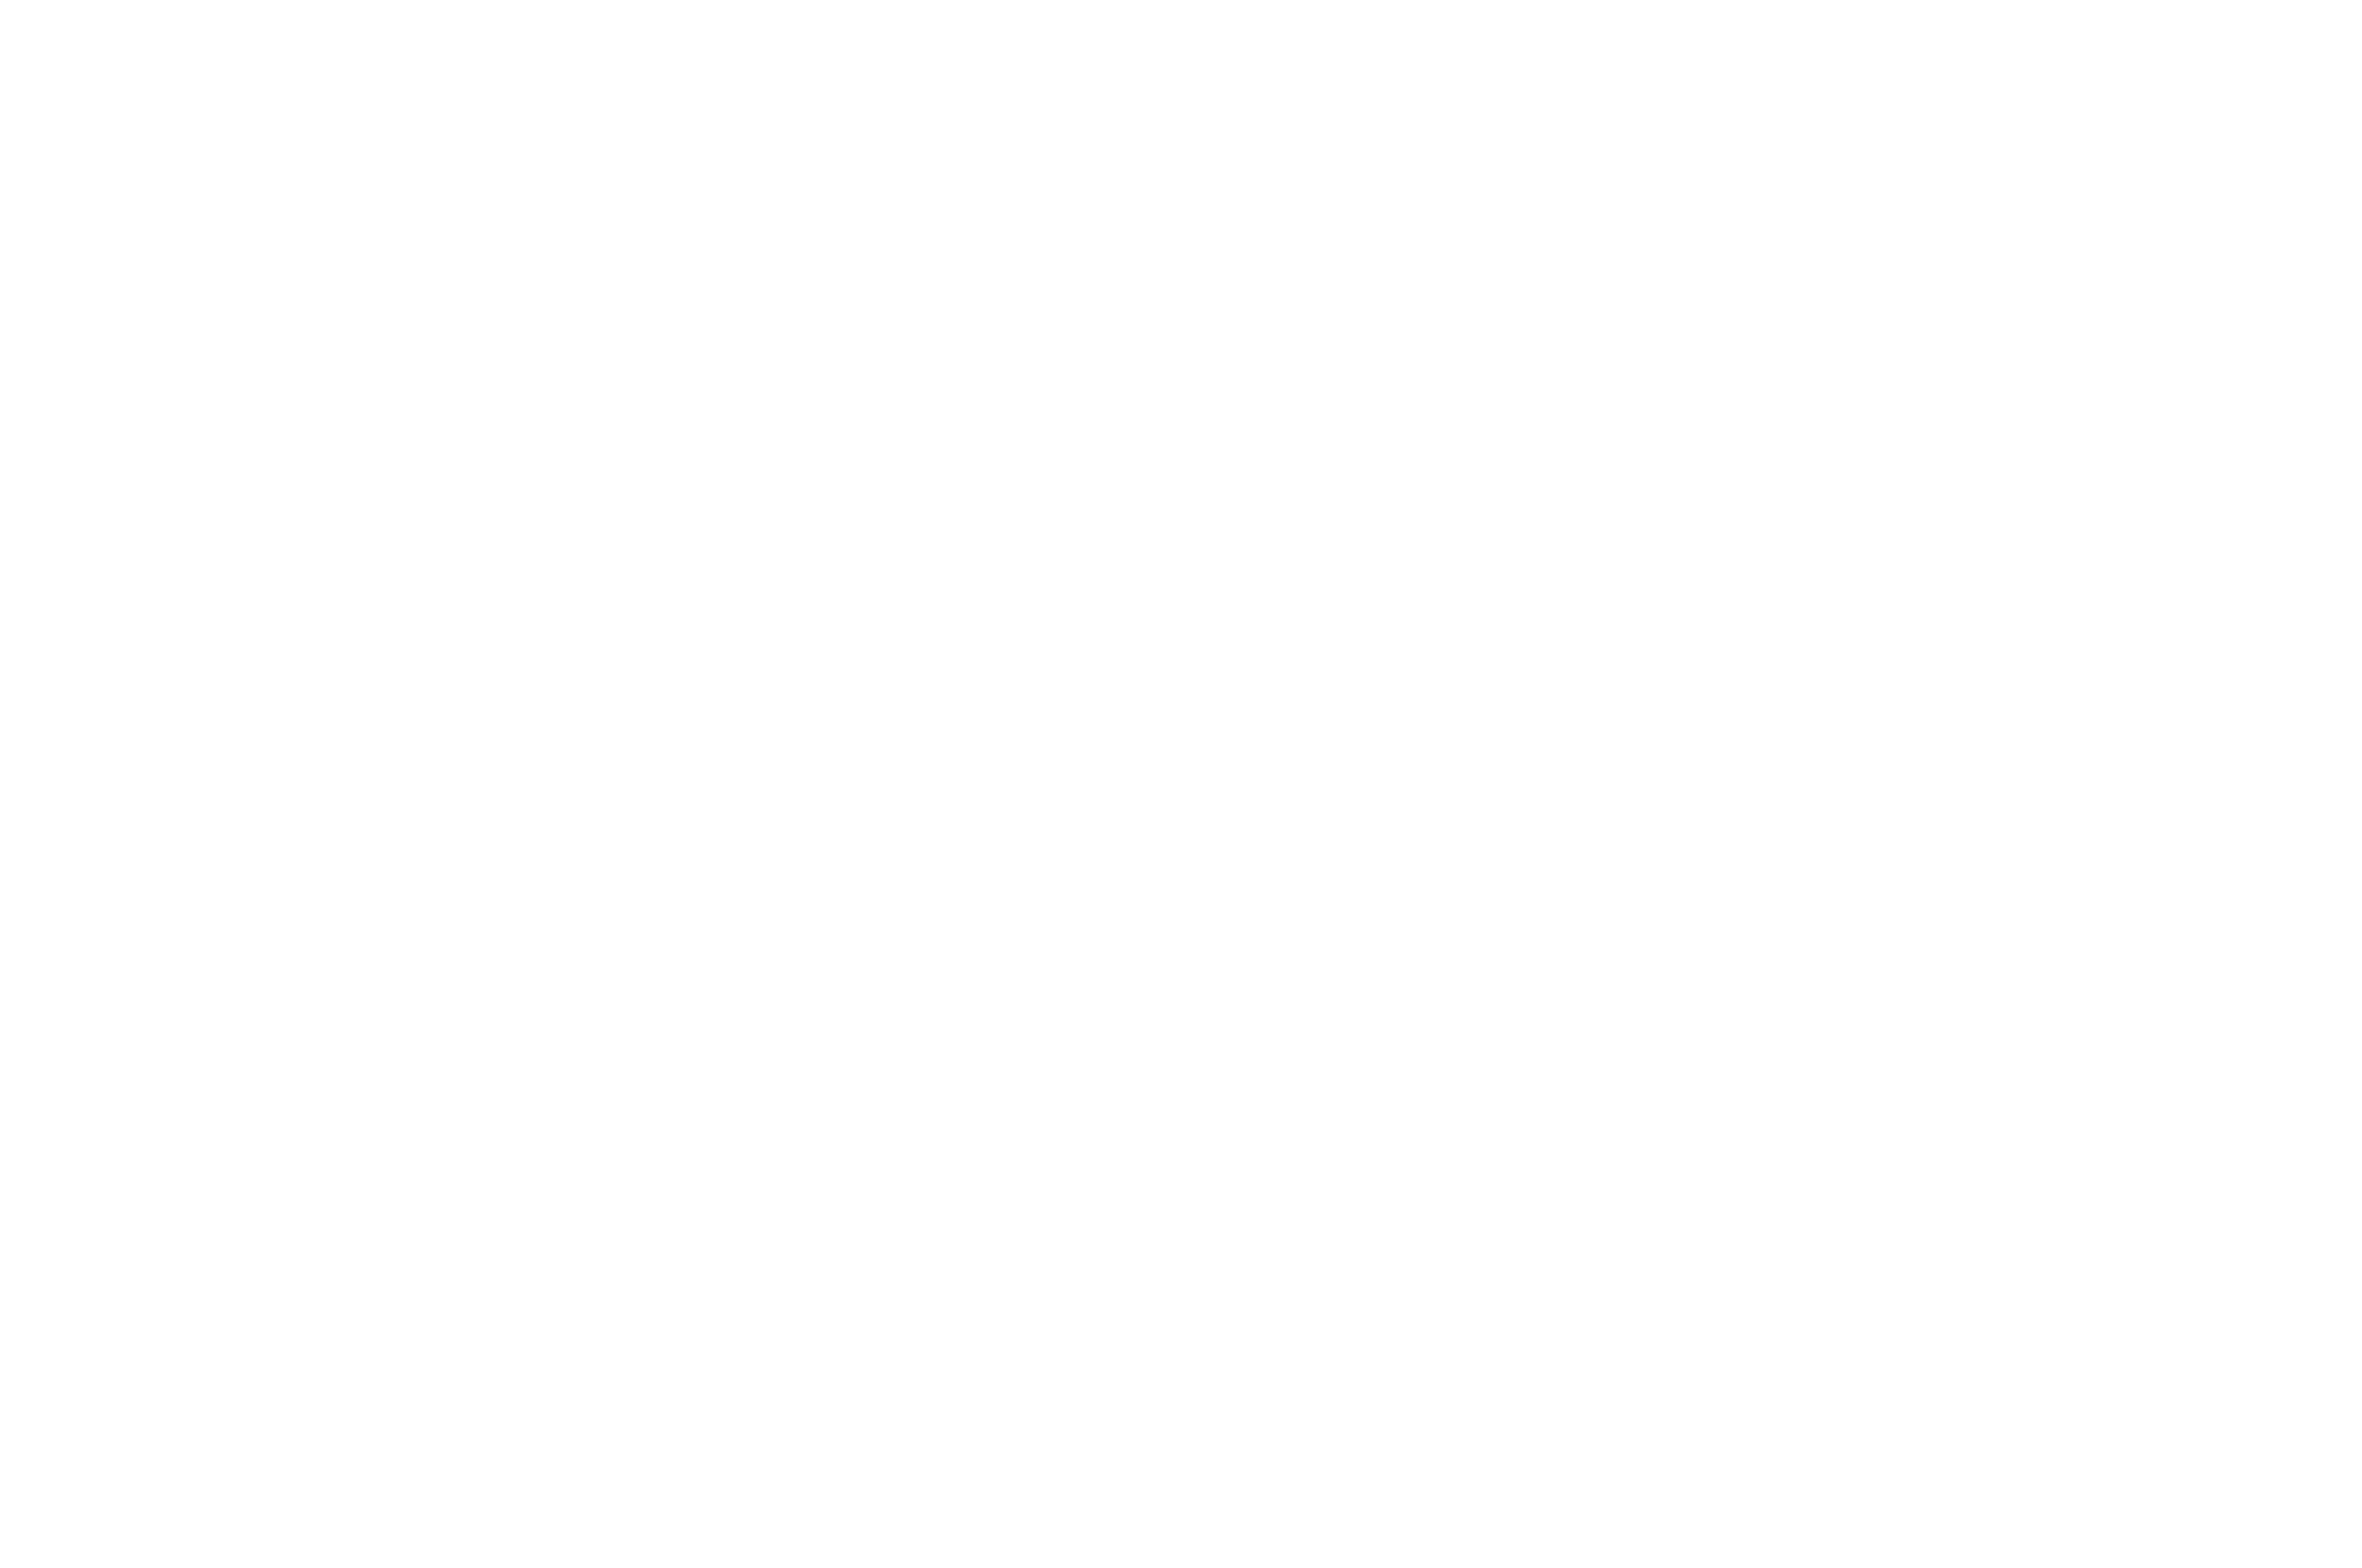 OFFICIALSELECTION-NorthByMidwestMicro-BudgetFilmFestival-2018 (1).png